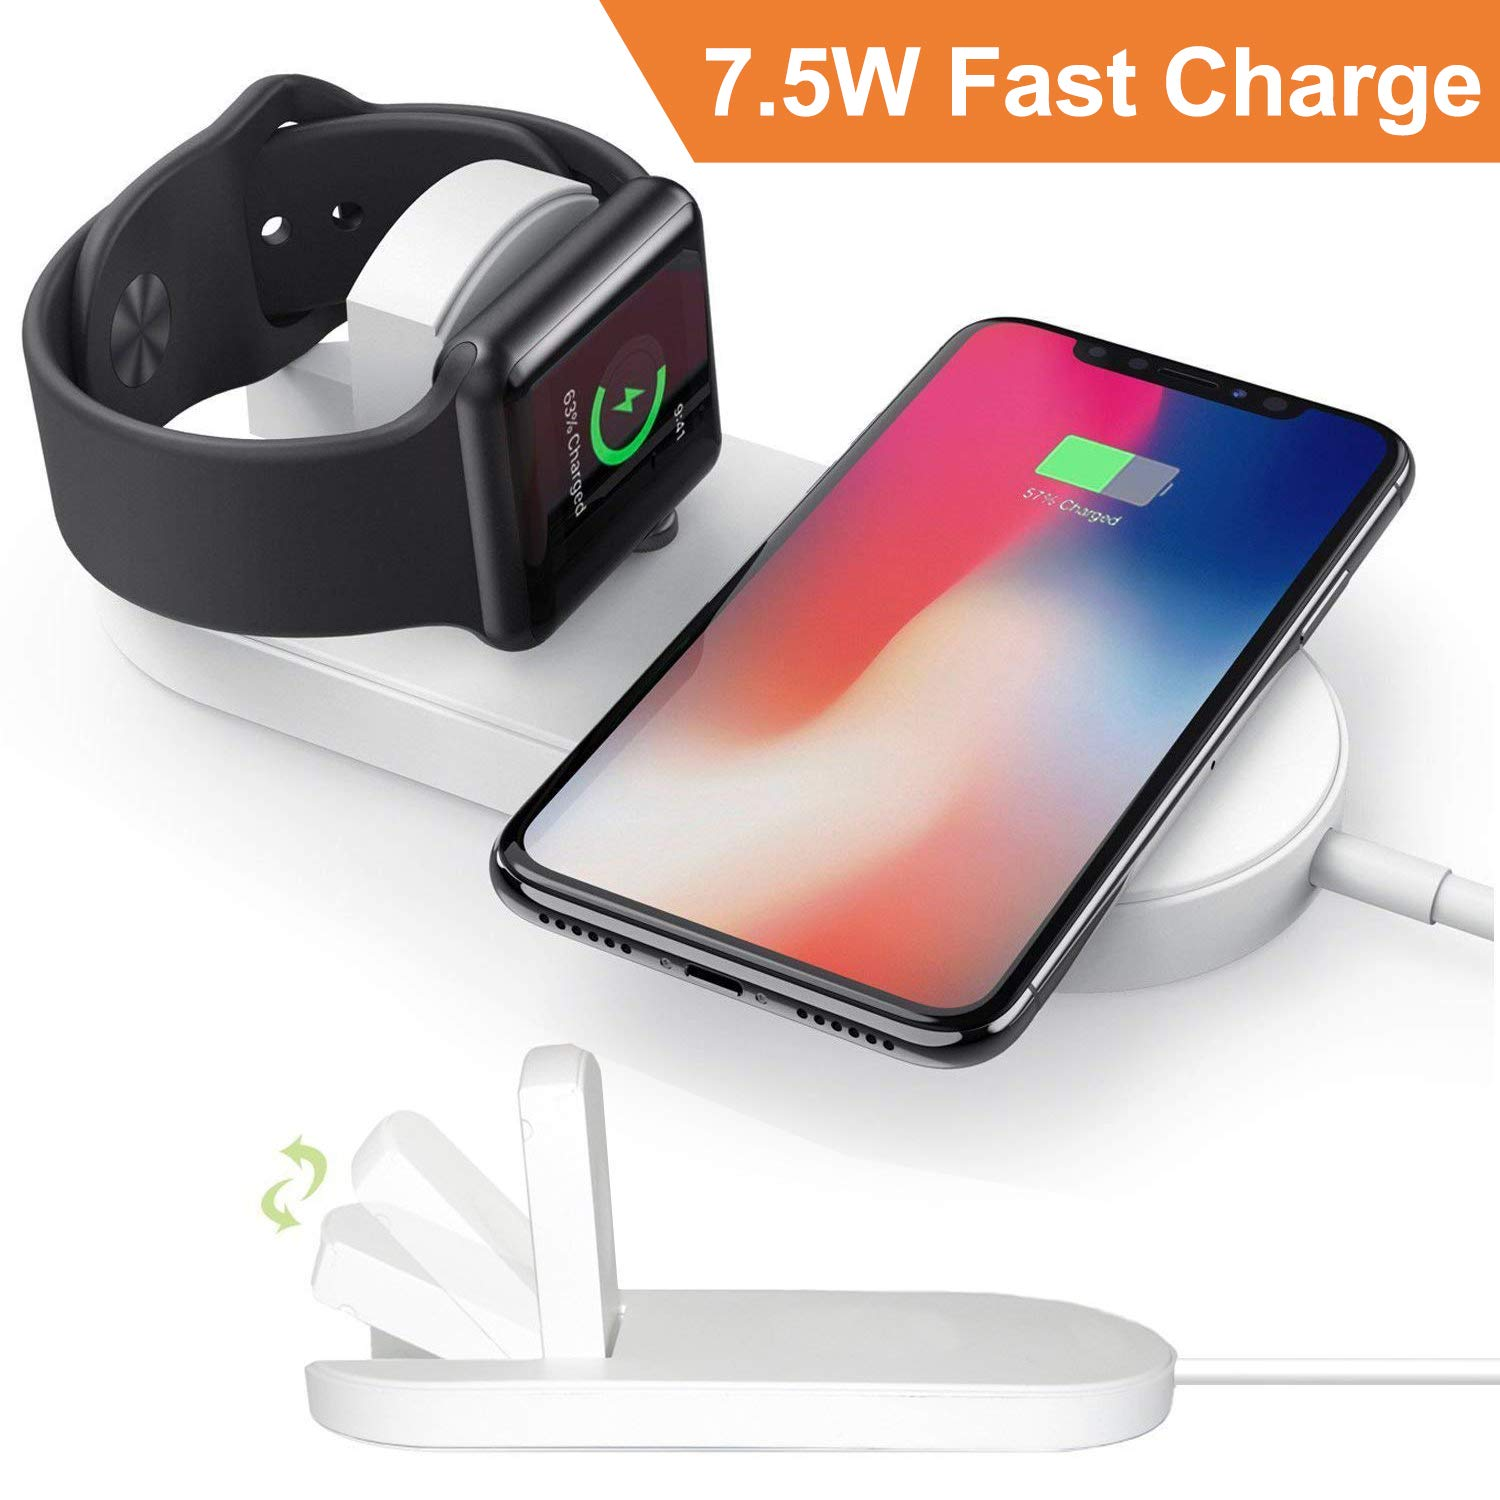 CulaLuva Magnetic Wireless Charger 2-in-1 Pad Stand Cable Compatible with Apple Watch, for iPhone X/8/8 Plus, compatible with iWatch Series 1/2/3, 38mm 42mm, Samsung S8 Series, Note 8 by CulaLuva